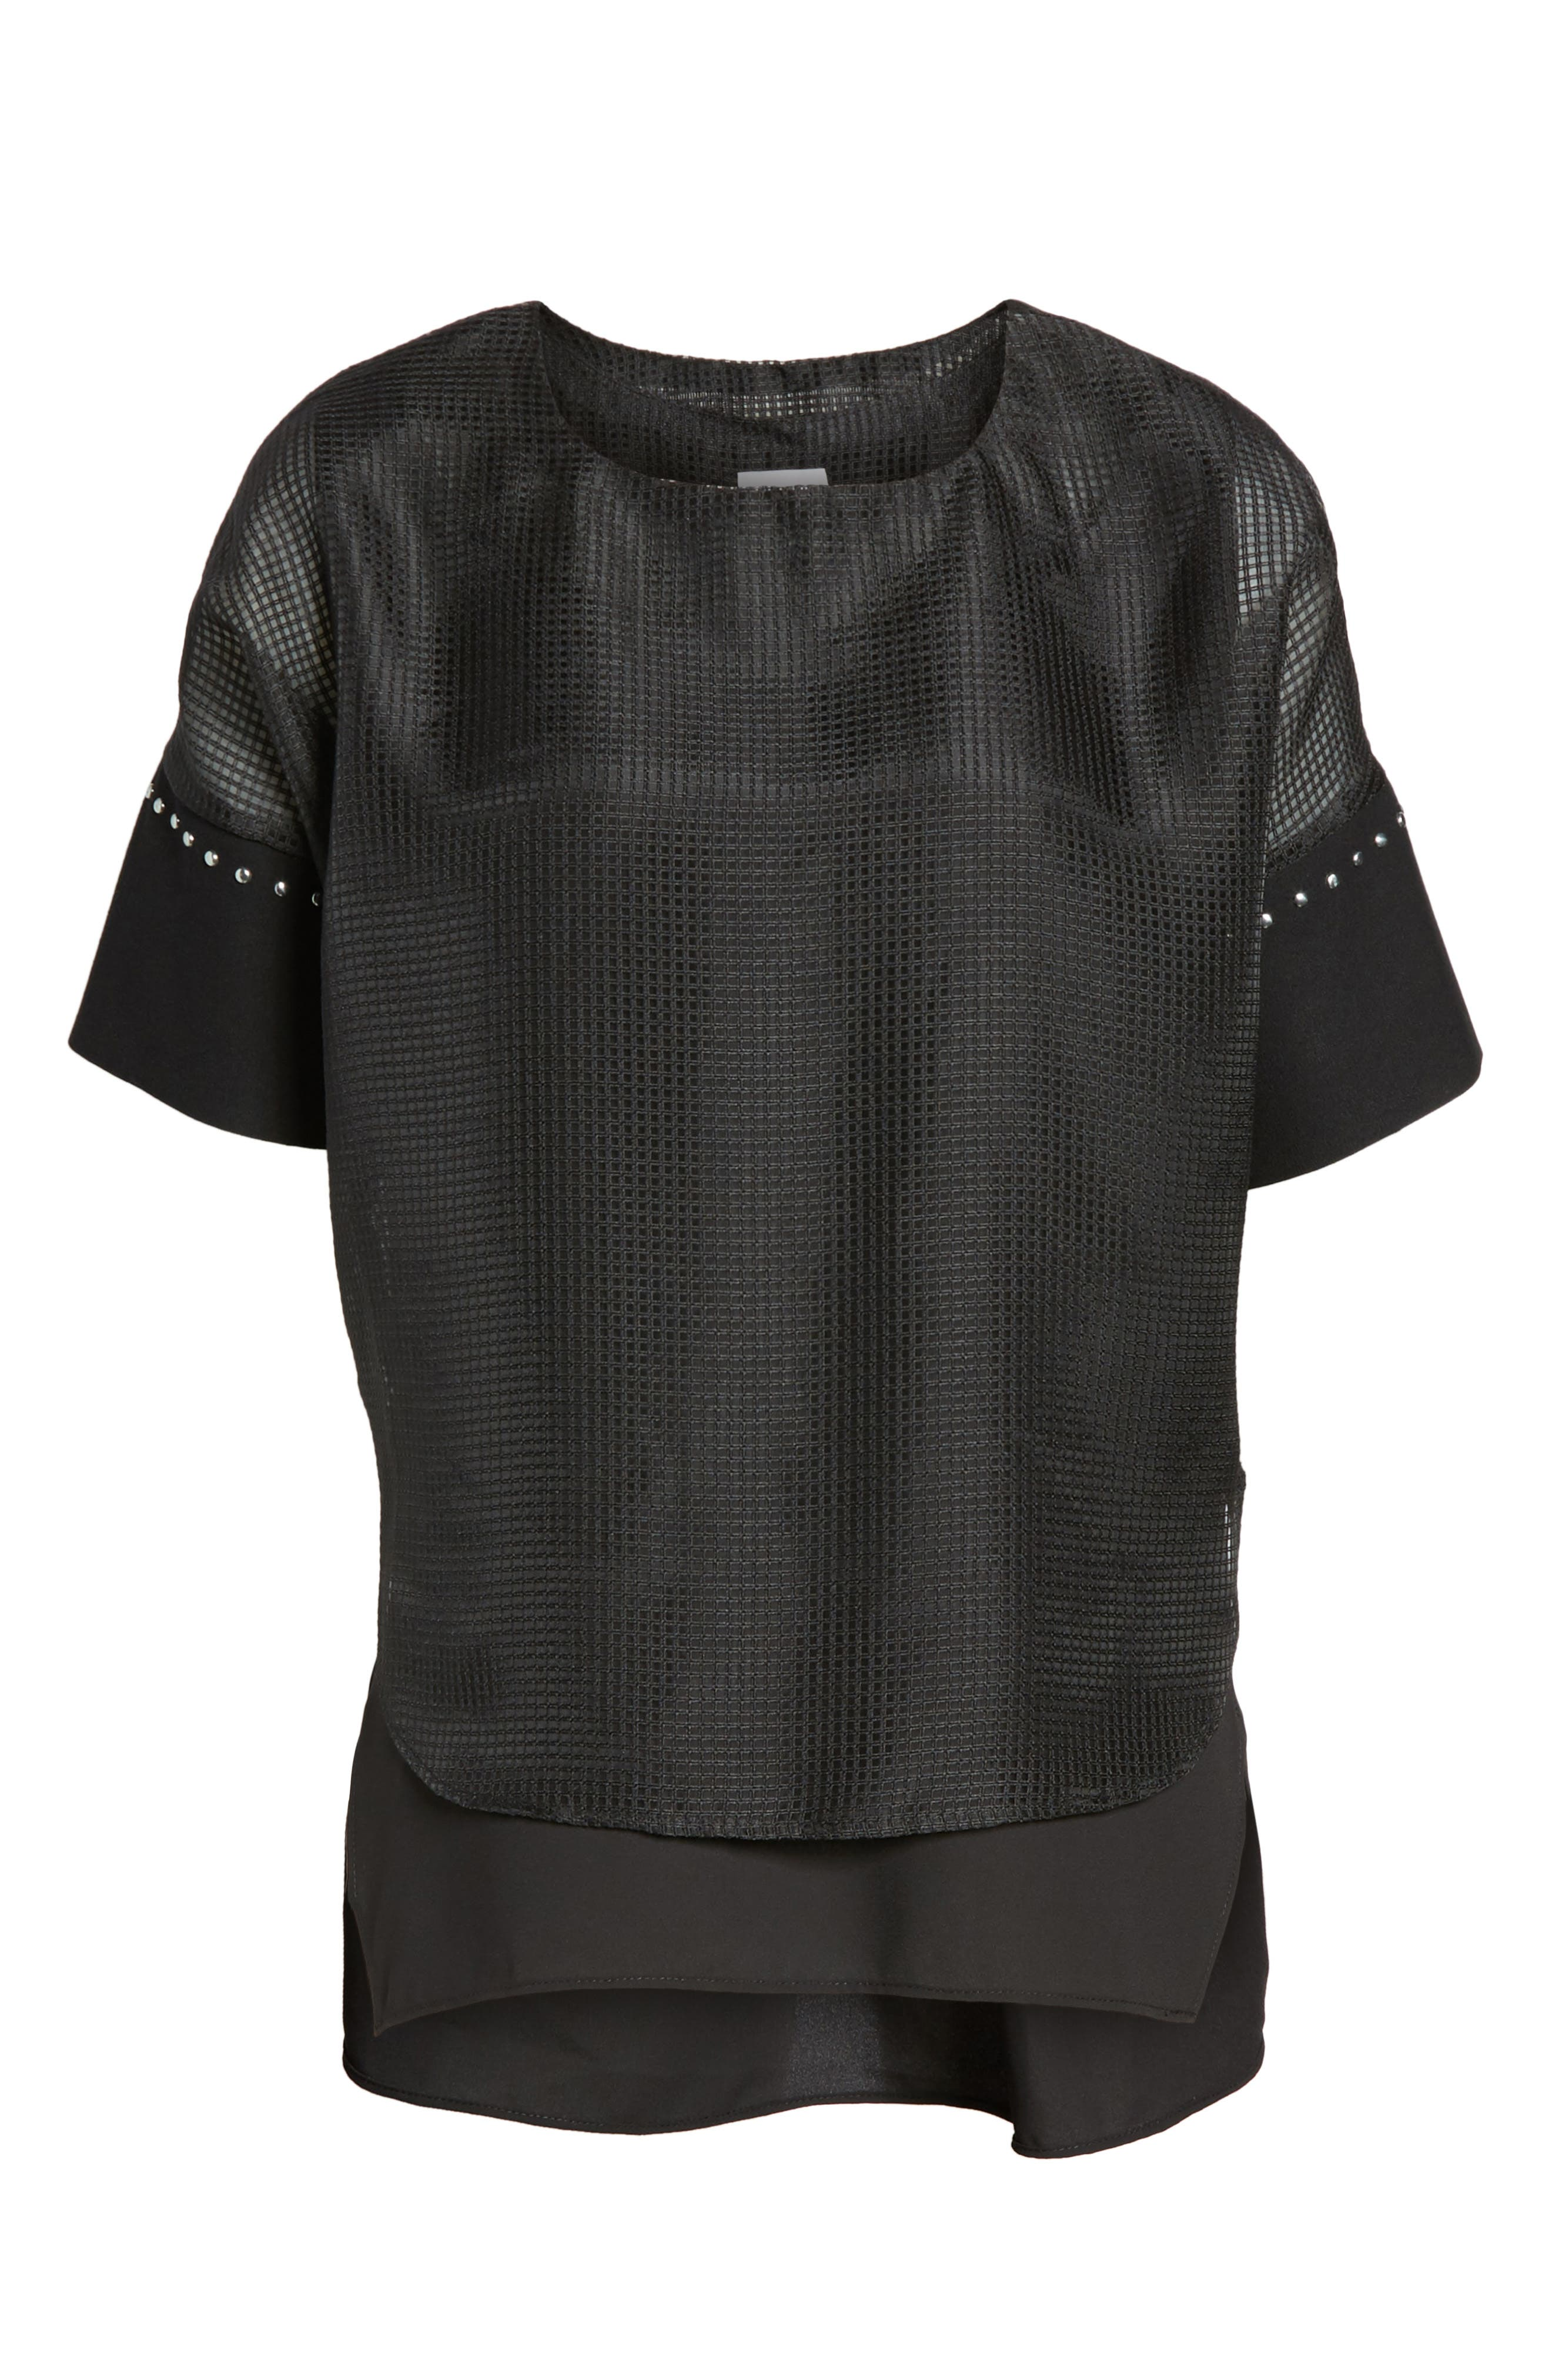 Mesh Layered Top,                             Alternate thumbnail 6, color,                             001